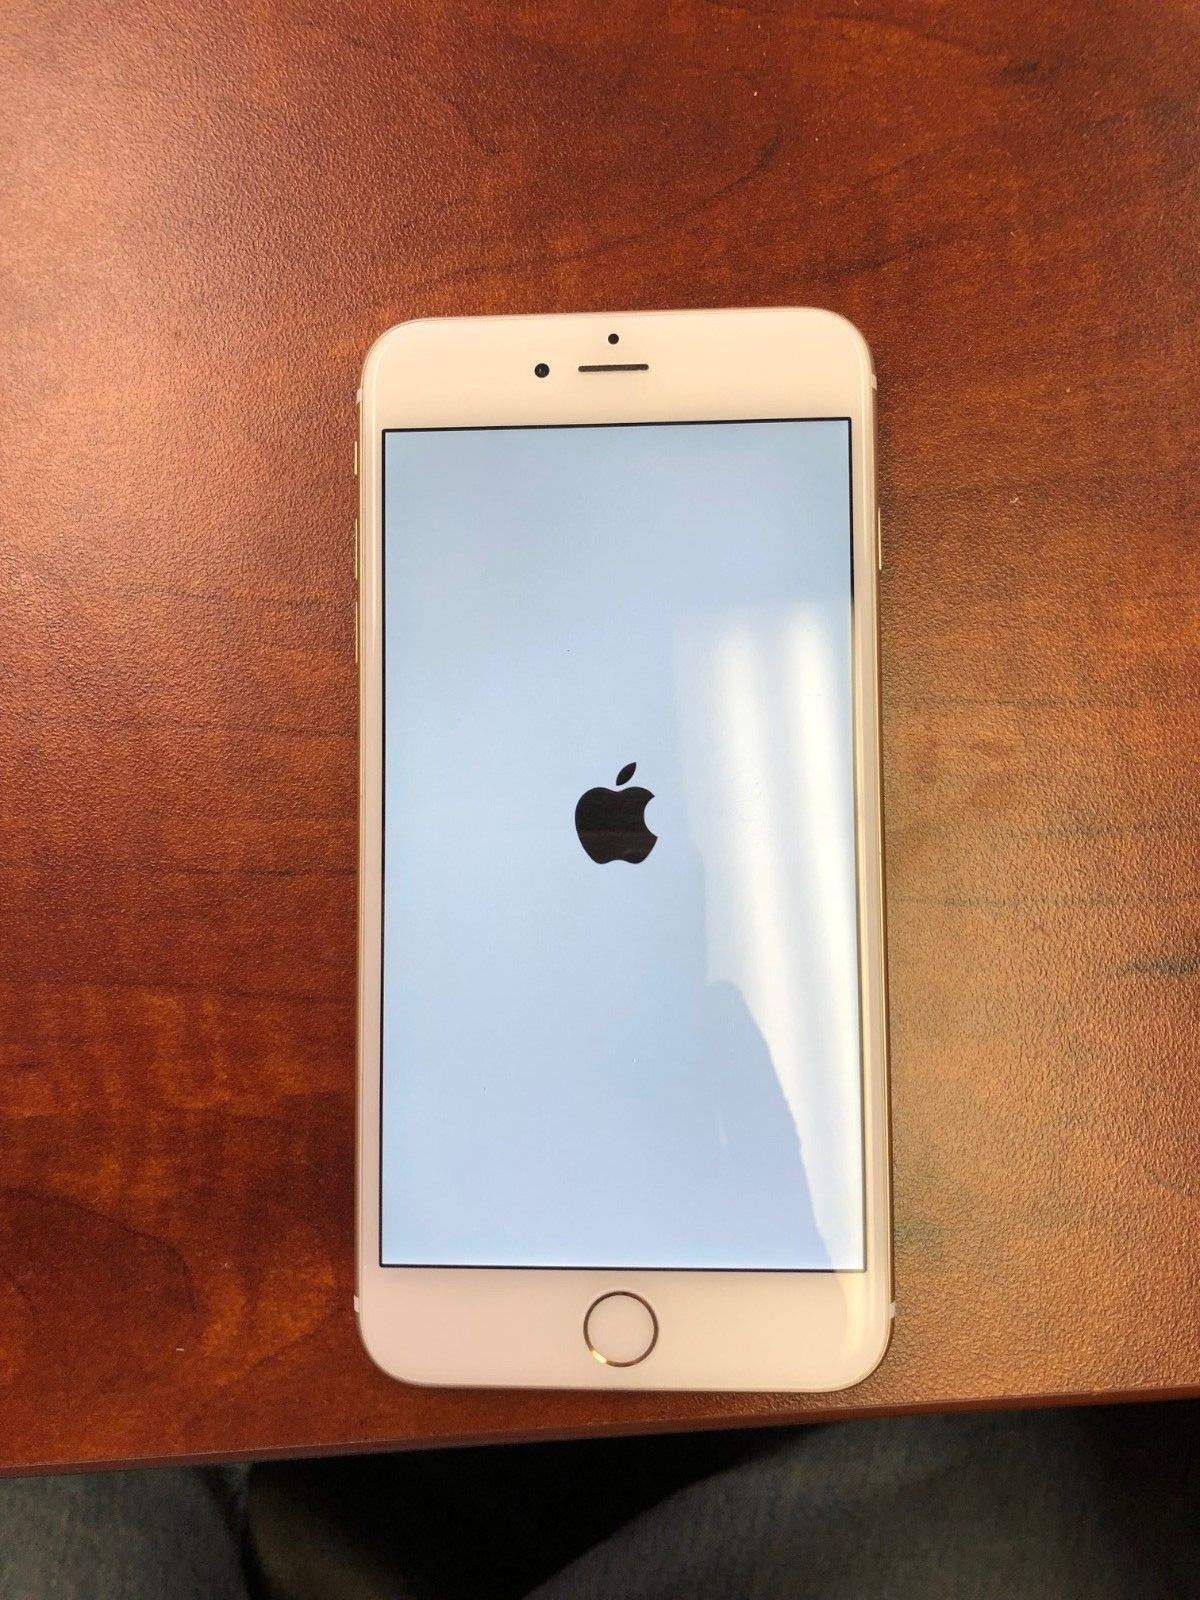 Apple Iphone 6 Plus 16gb Silver At T Iphone Apple Iphone 5s Ipod Touch 6th Generation